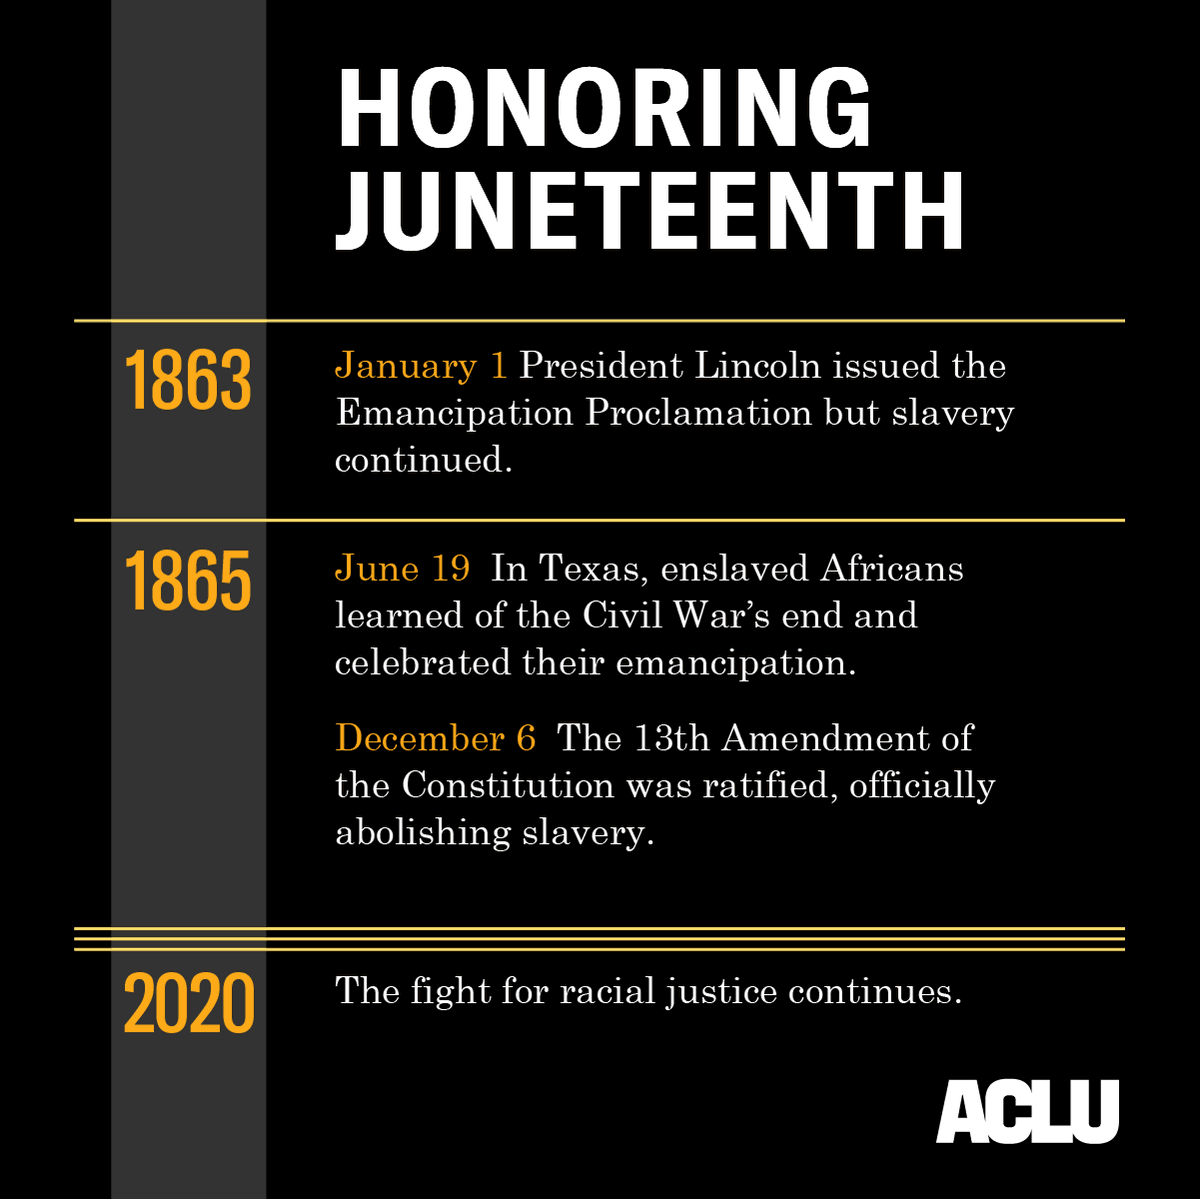 Happy Juneteenth!  We honor this day by working in solidarity with all those fighting for racial justice. https://t.co/kyFlJ7HqL4